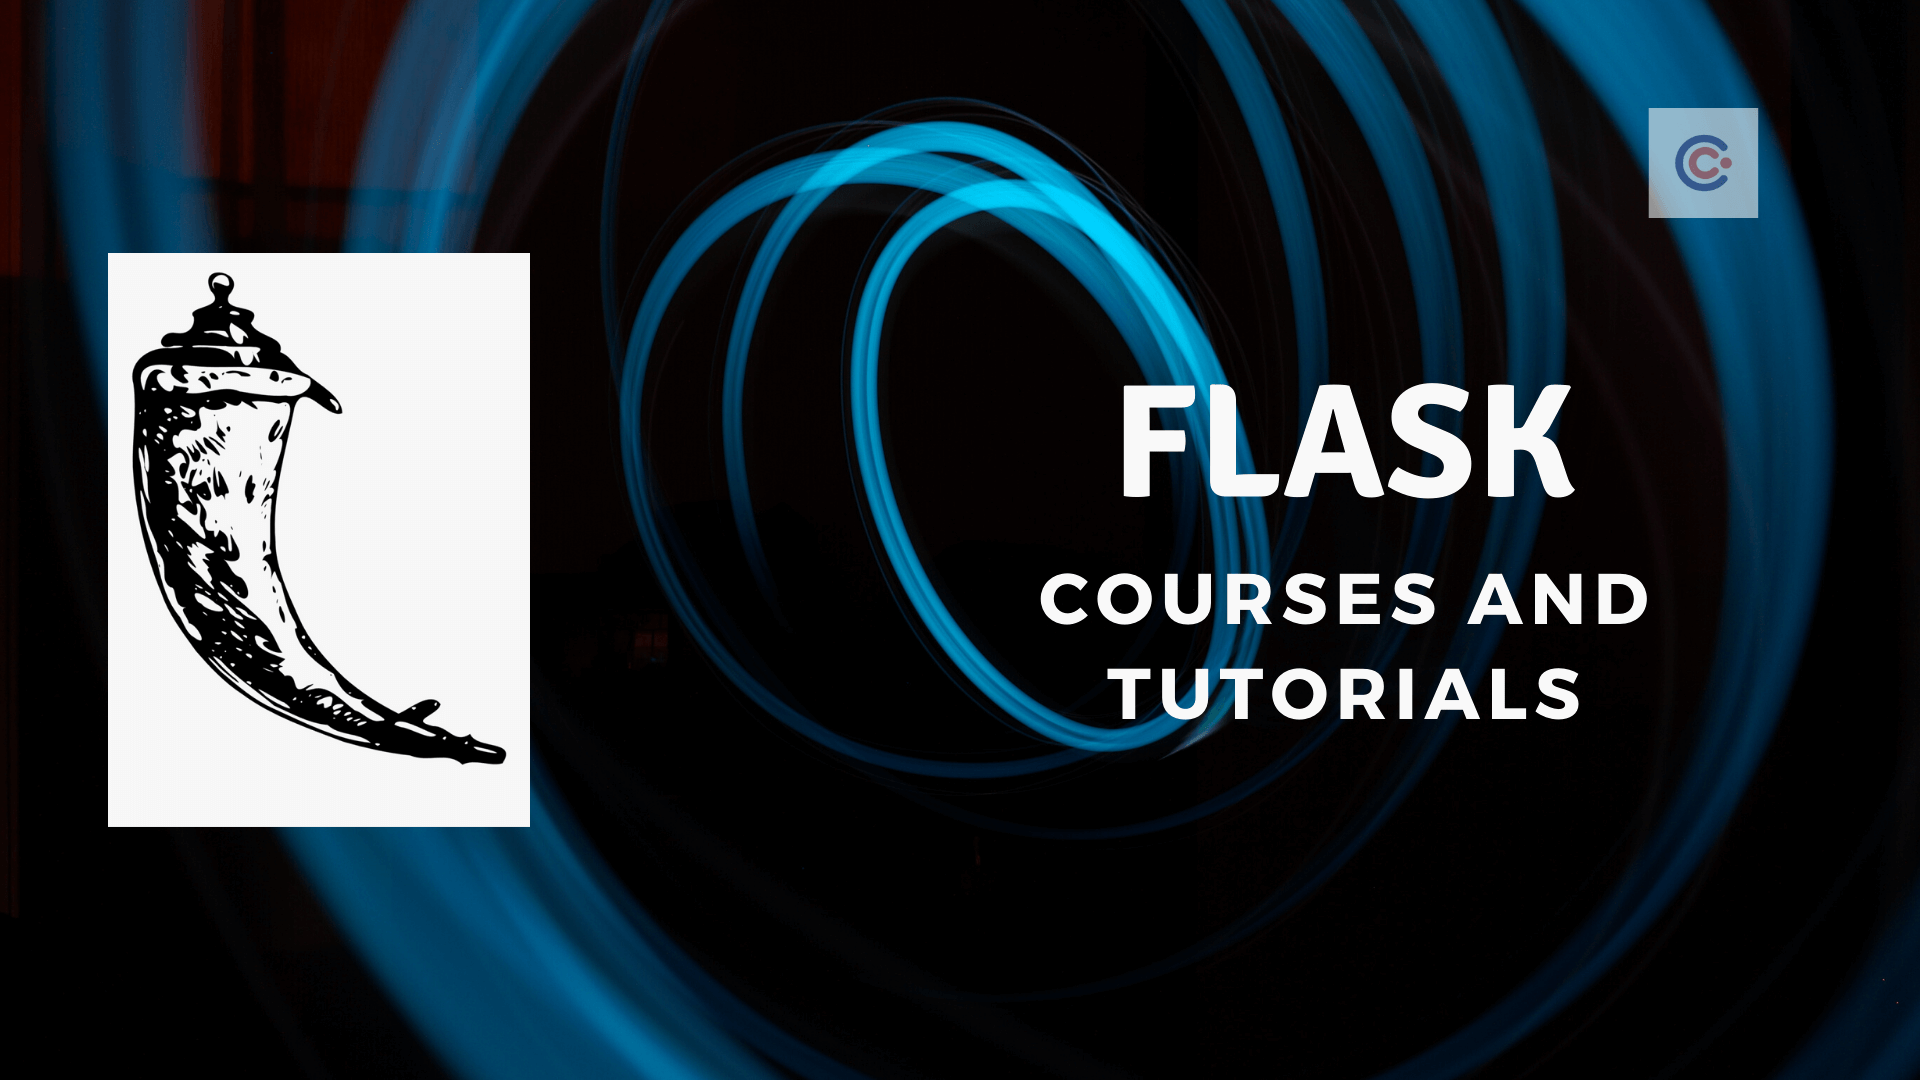 10 Best Flask Tutorials and Courses - Learn Flask Online